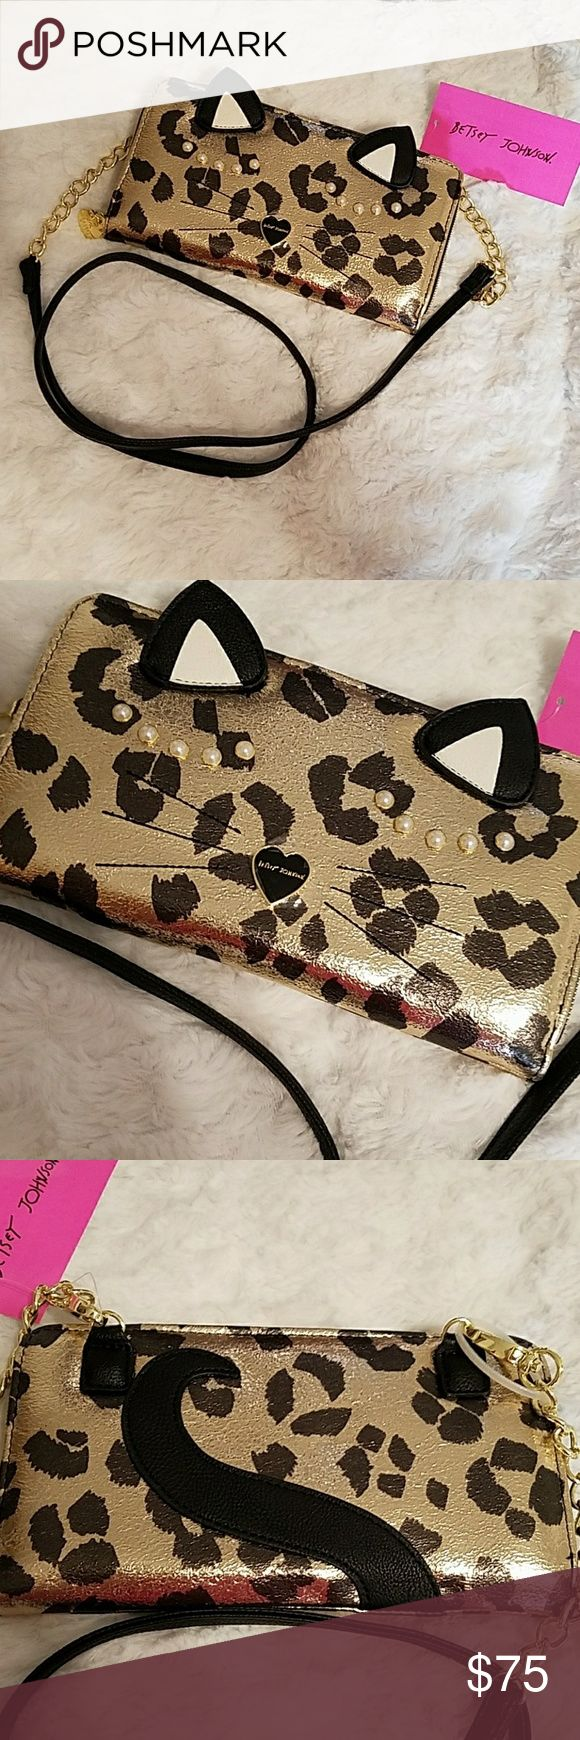 """NWT- BETSEY JOHNSON CHEETAH ON A STRING! NWT- BETSEY JOHNSON CHEETAH WALLET ON A STRING! Such a great bag just love the design the outside is so much fun this bag offers detachable cross-body strap, zipper closure at wallet compartment and zipper at coin pouch. The exterior has several awesome designs Interior has 8 wallet card slots & 2 more slots plenty of room for all your things. MEASUREMENTS: W9"""" X D1"""" X H5 1⁄2""""  NWT-BRAND NEW WITH TAGS 100% AUTHENTIC NO TRADES/NO HOLDS Betsey Johnson…"""